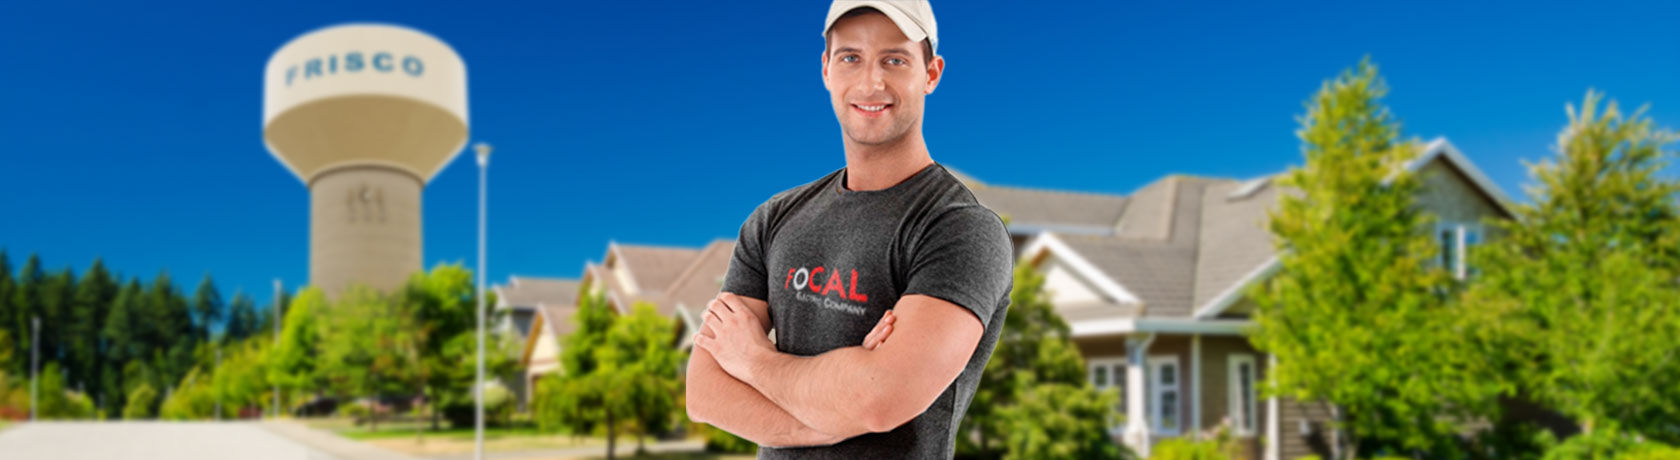 frisco electrical services